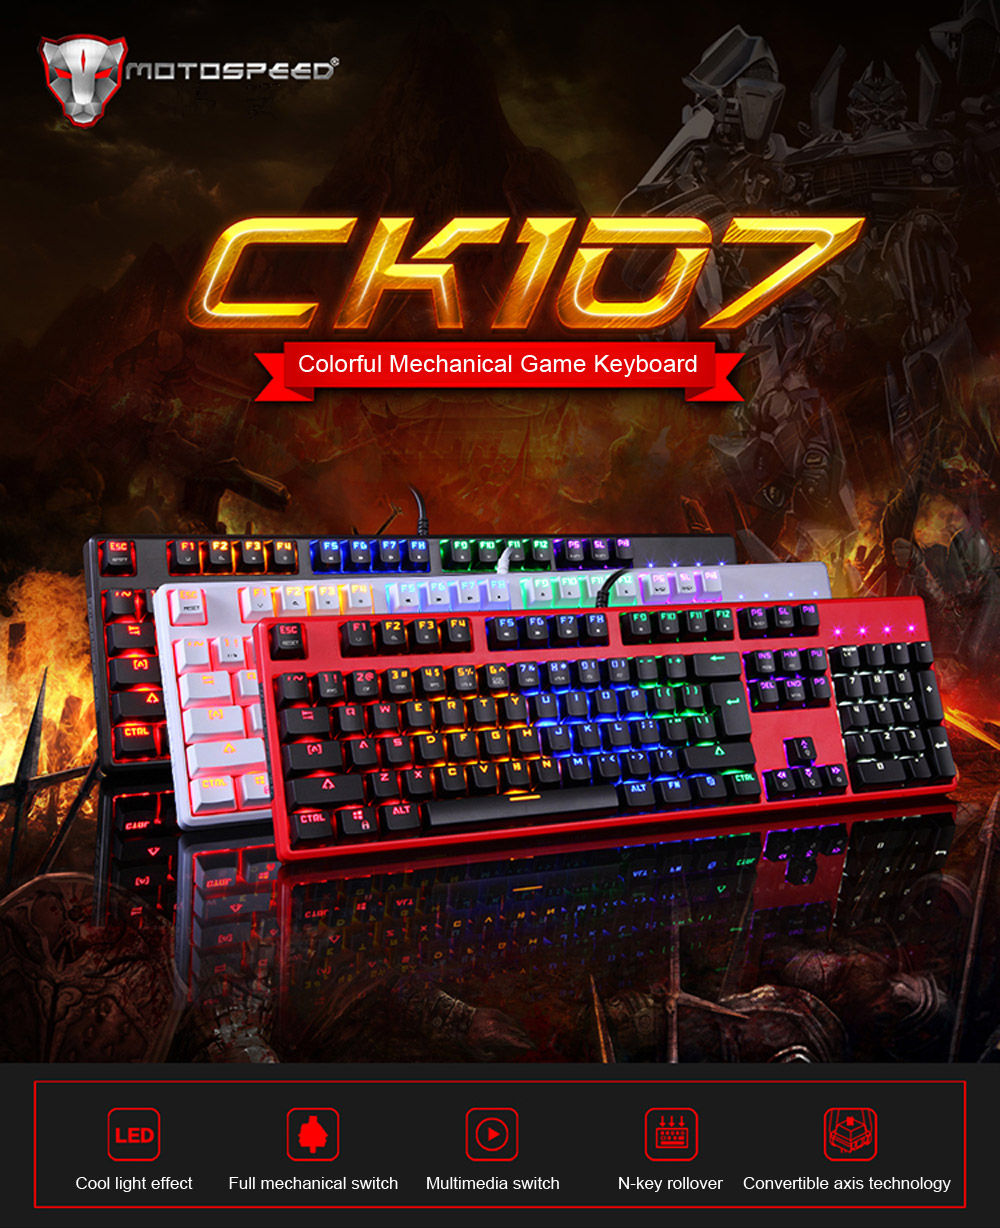 Motospeed CK107 Mechanical Keyboard with LED Backlit